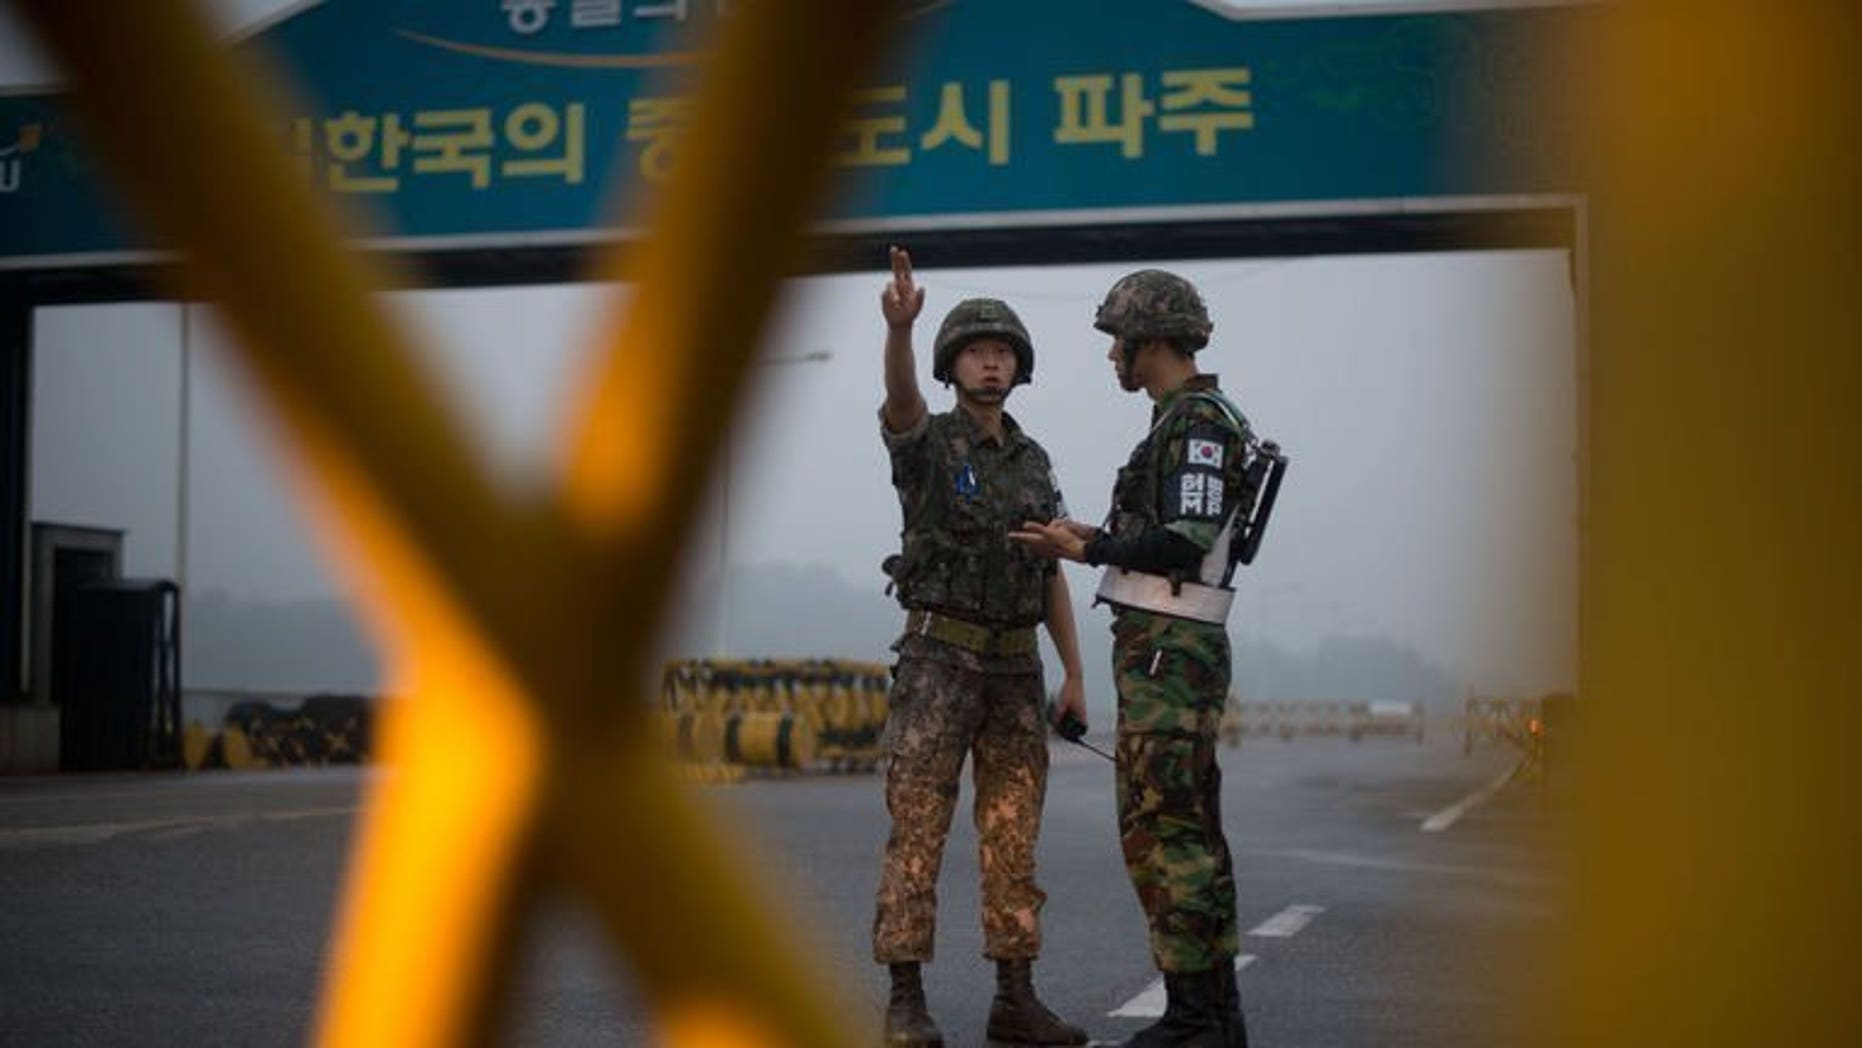 South Korean soldiers stand at a military checkpoint leading to the Kaesong joint industrial complex in North Korea on July 10, 2013. North and South Korea will hold fresh talks Thursday on reopening a joint industrial zone amid growing concern that the last symbol of peace between the two countries might be heading for a permanent closure.